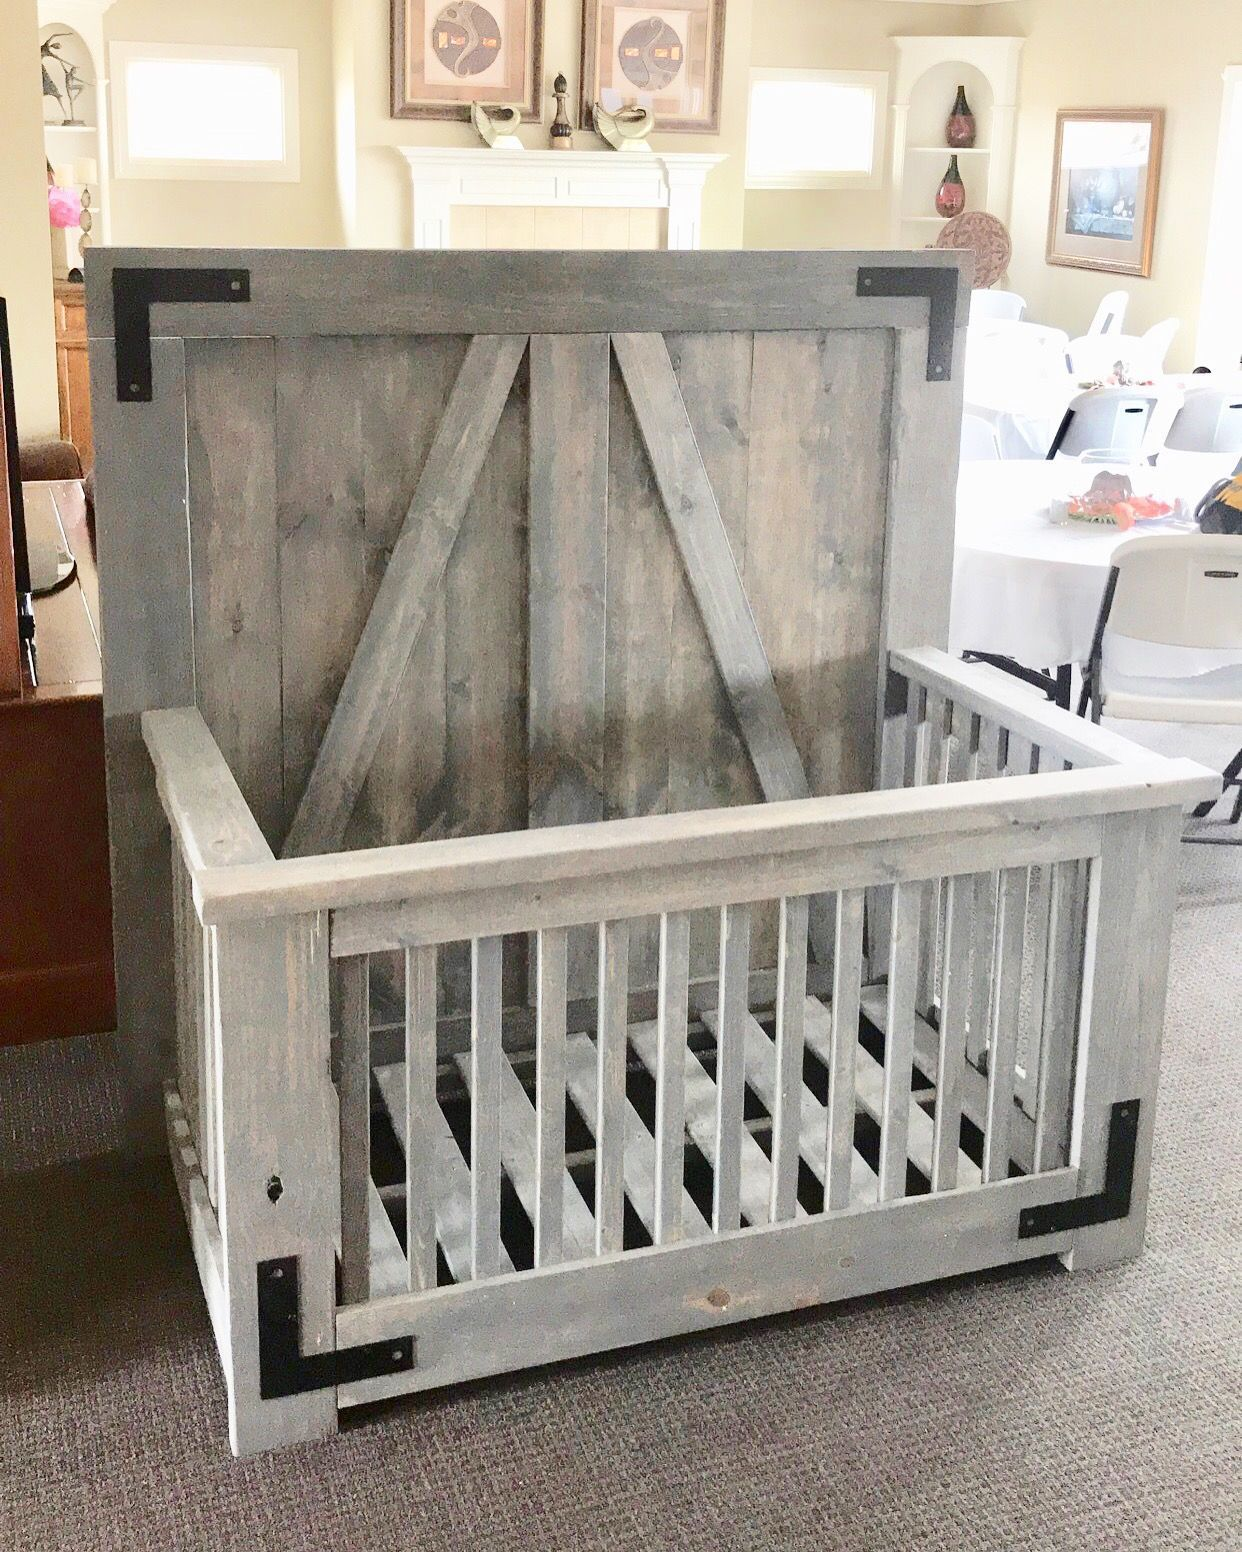 rustic grey crib on farmhouse style baby crib nice gray finish with black accent pieces probably the funnest project i think i ve m baby boy decorations boy decor baby furniture farmhouse style baby crib nice gray